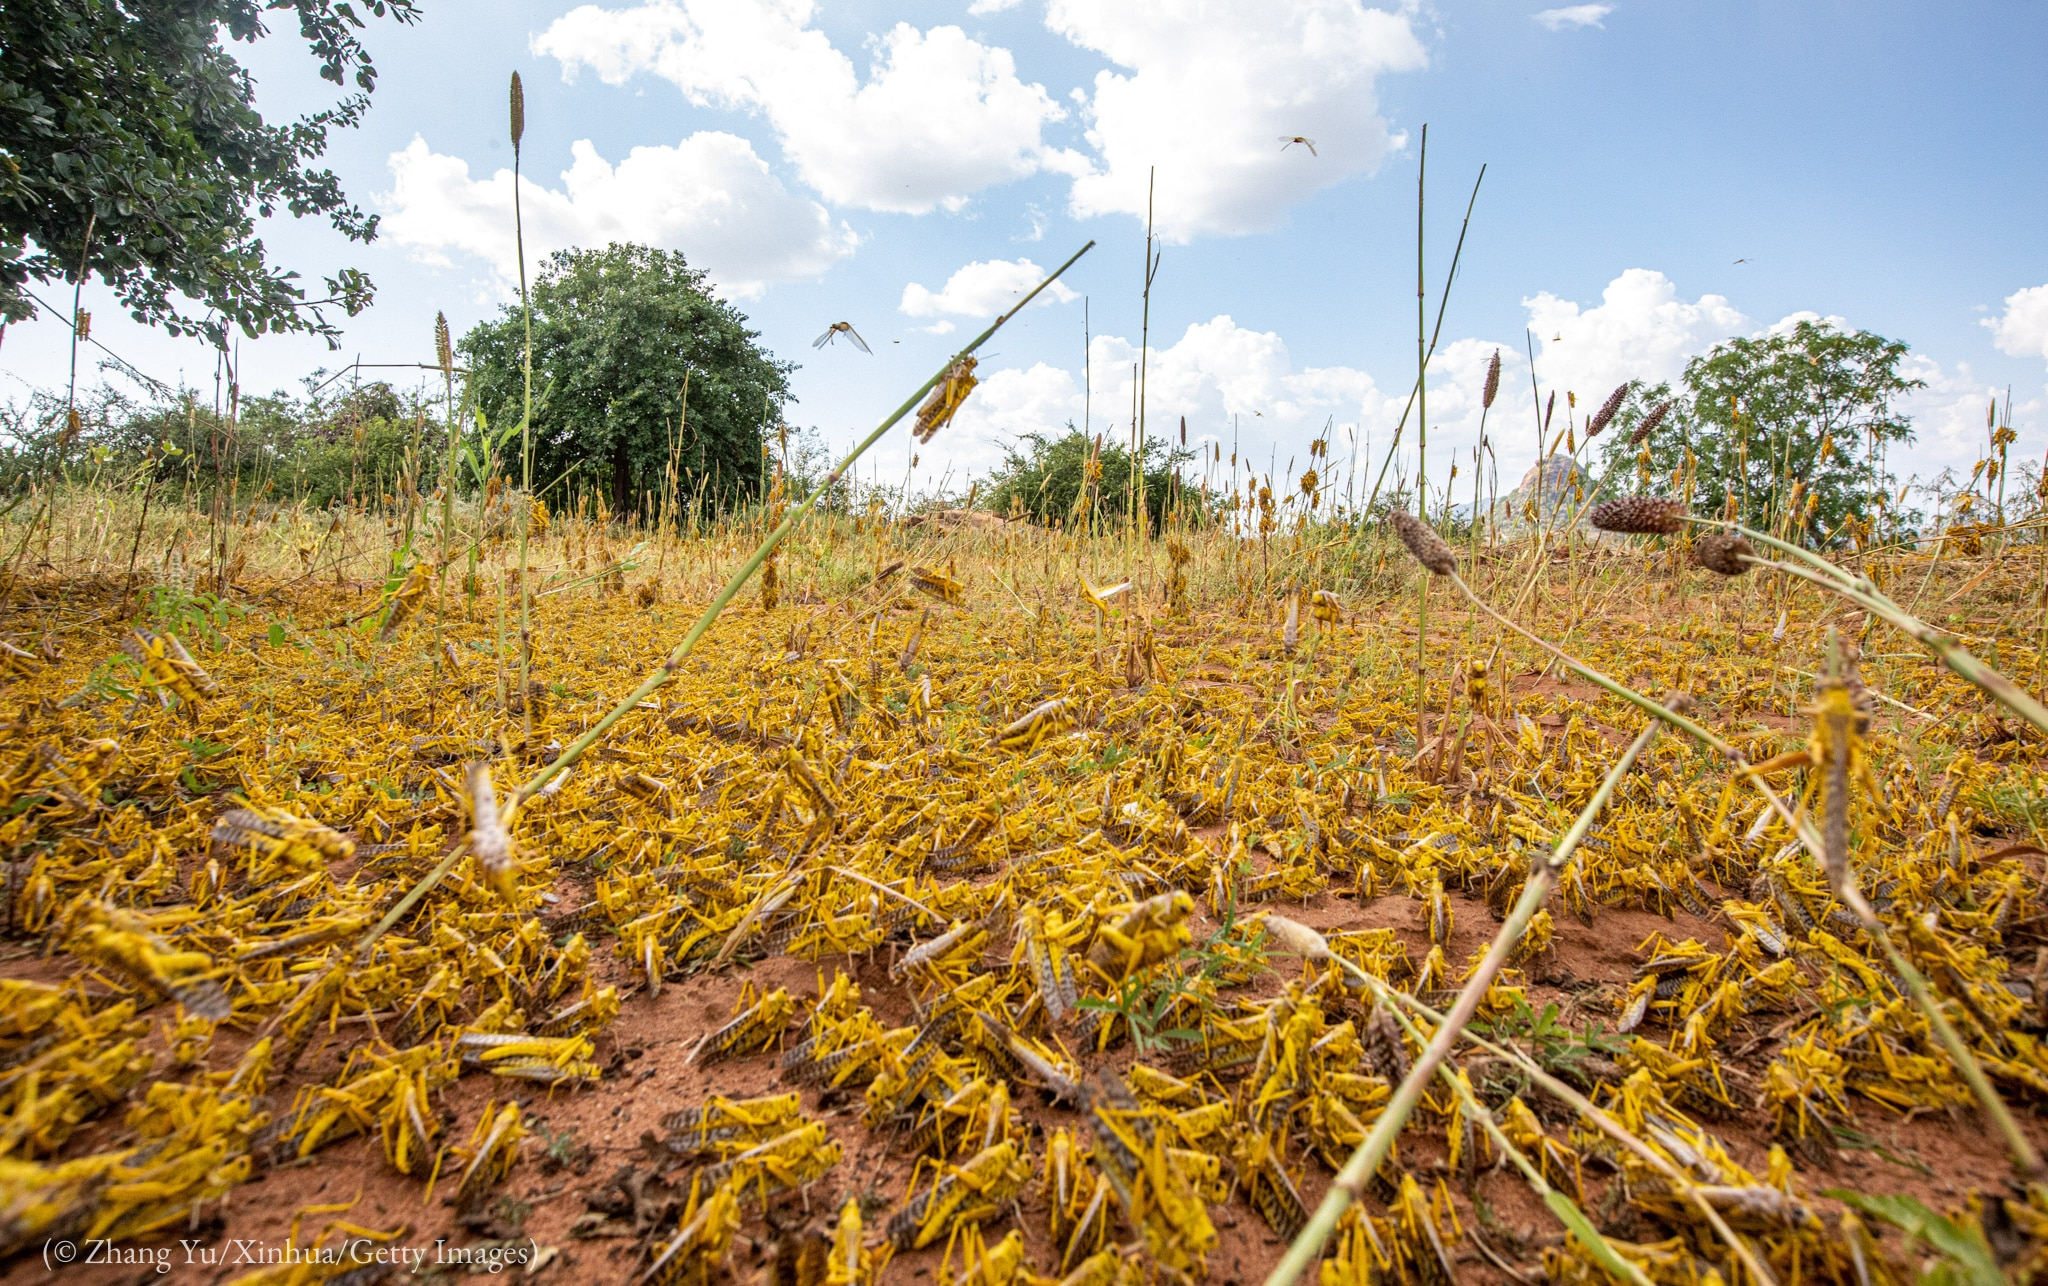 Locusts covering ground with sparse and dying plants (© Zhang Yu/Xinhua/Getty Images)